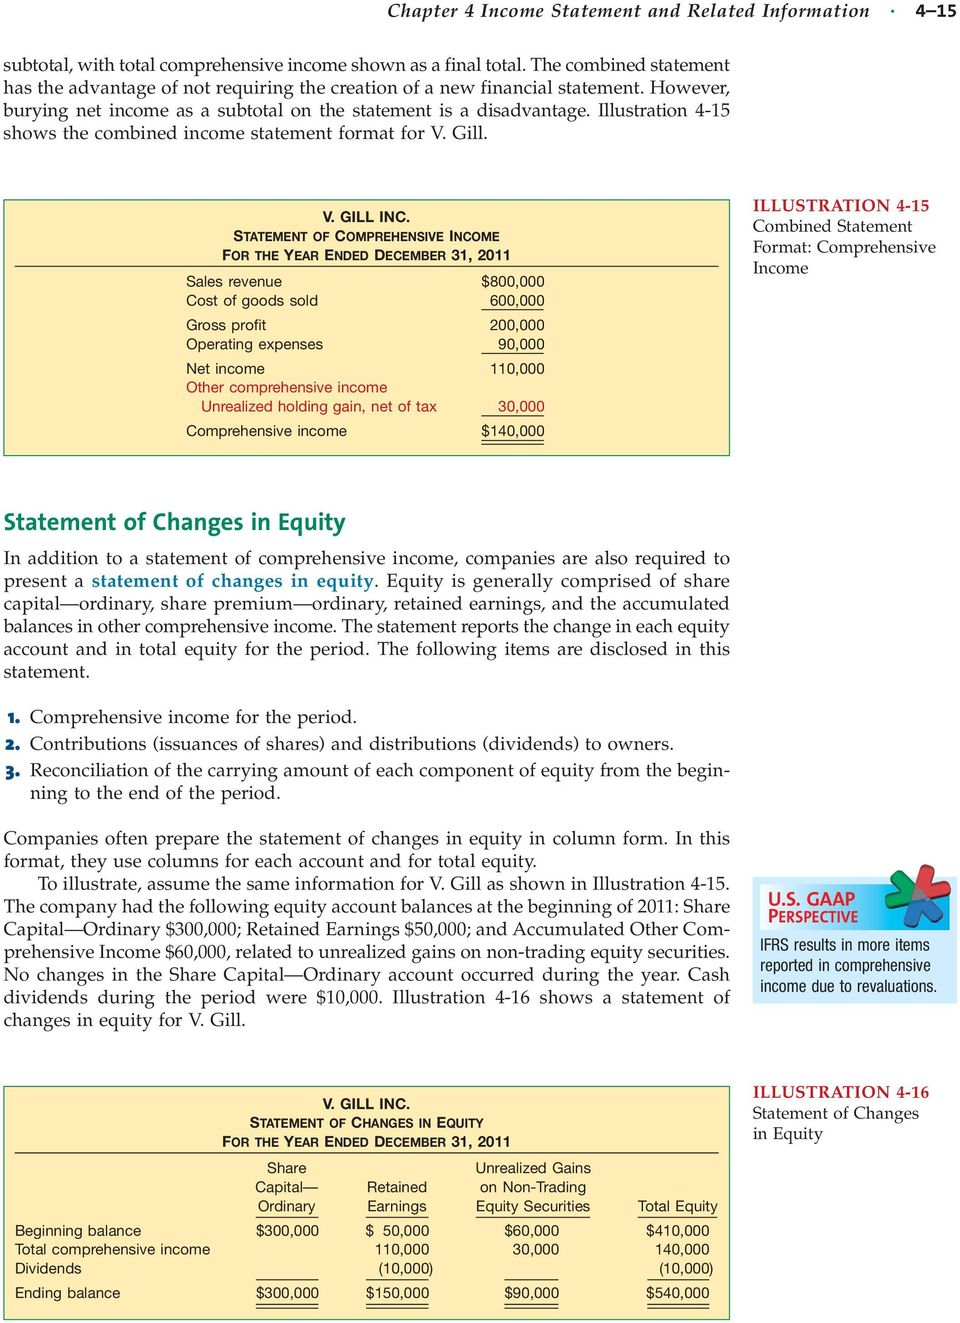 Illustration 4 15 Shows The Combined Income Statement Format For V Gill